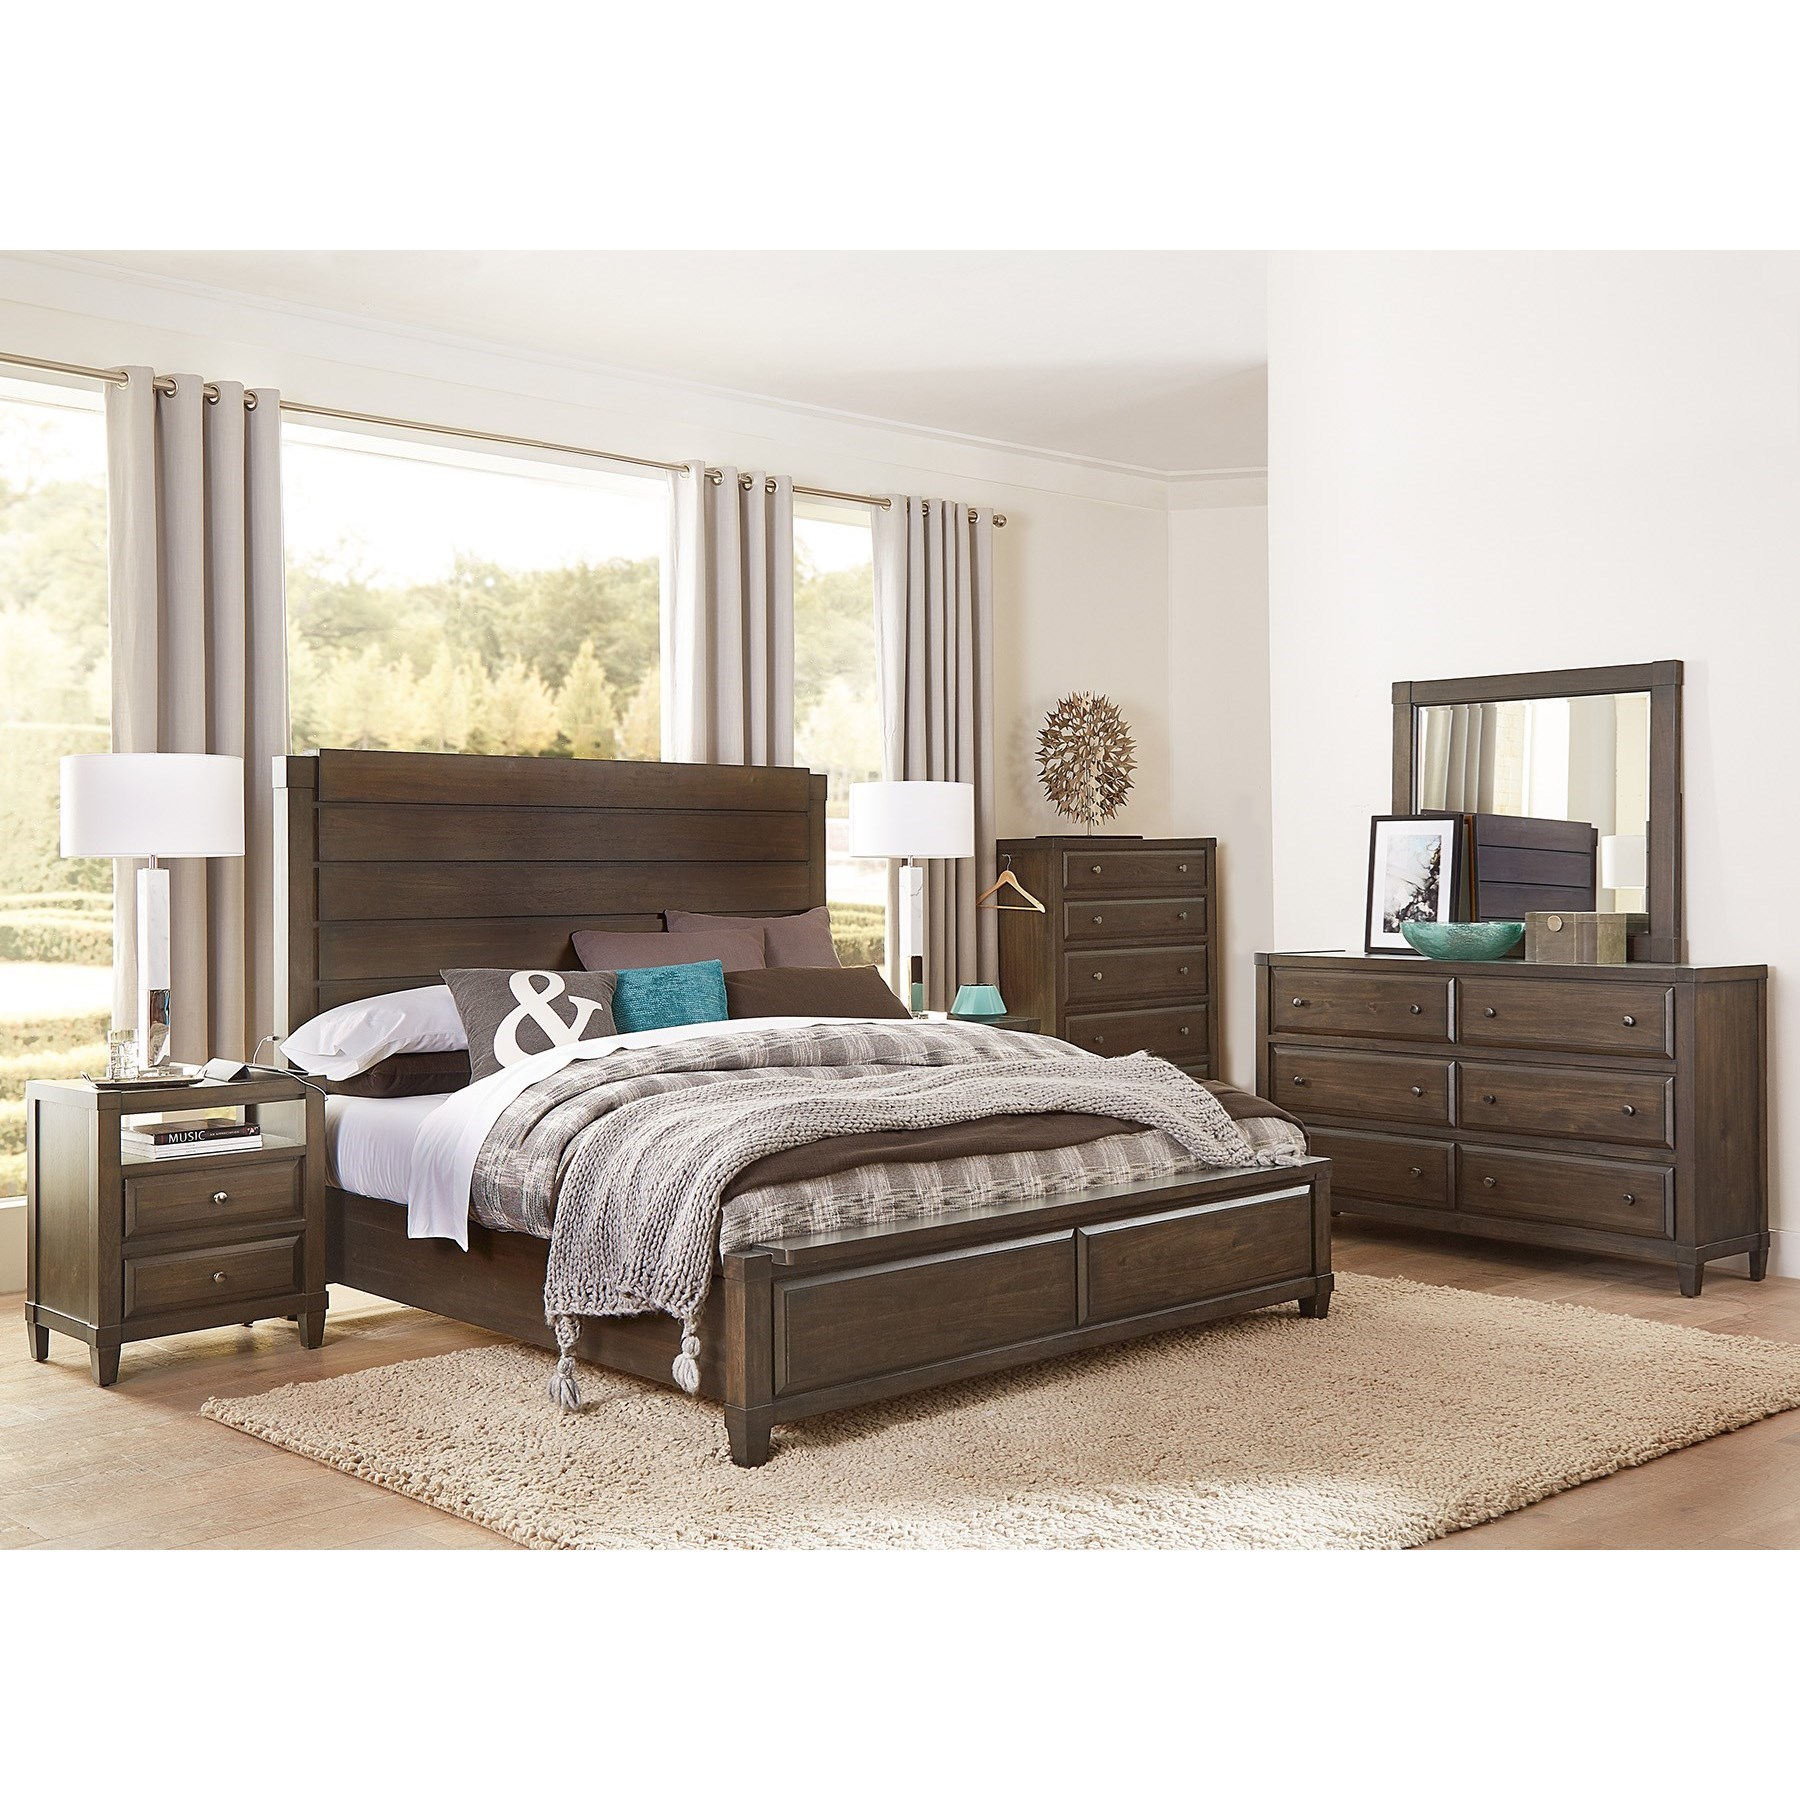 Easton Queen Bedroom Group by Aspenhome at Baer's Furniture